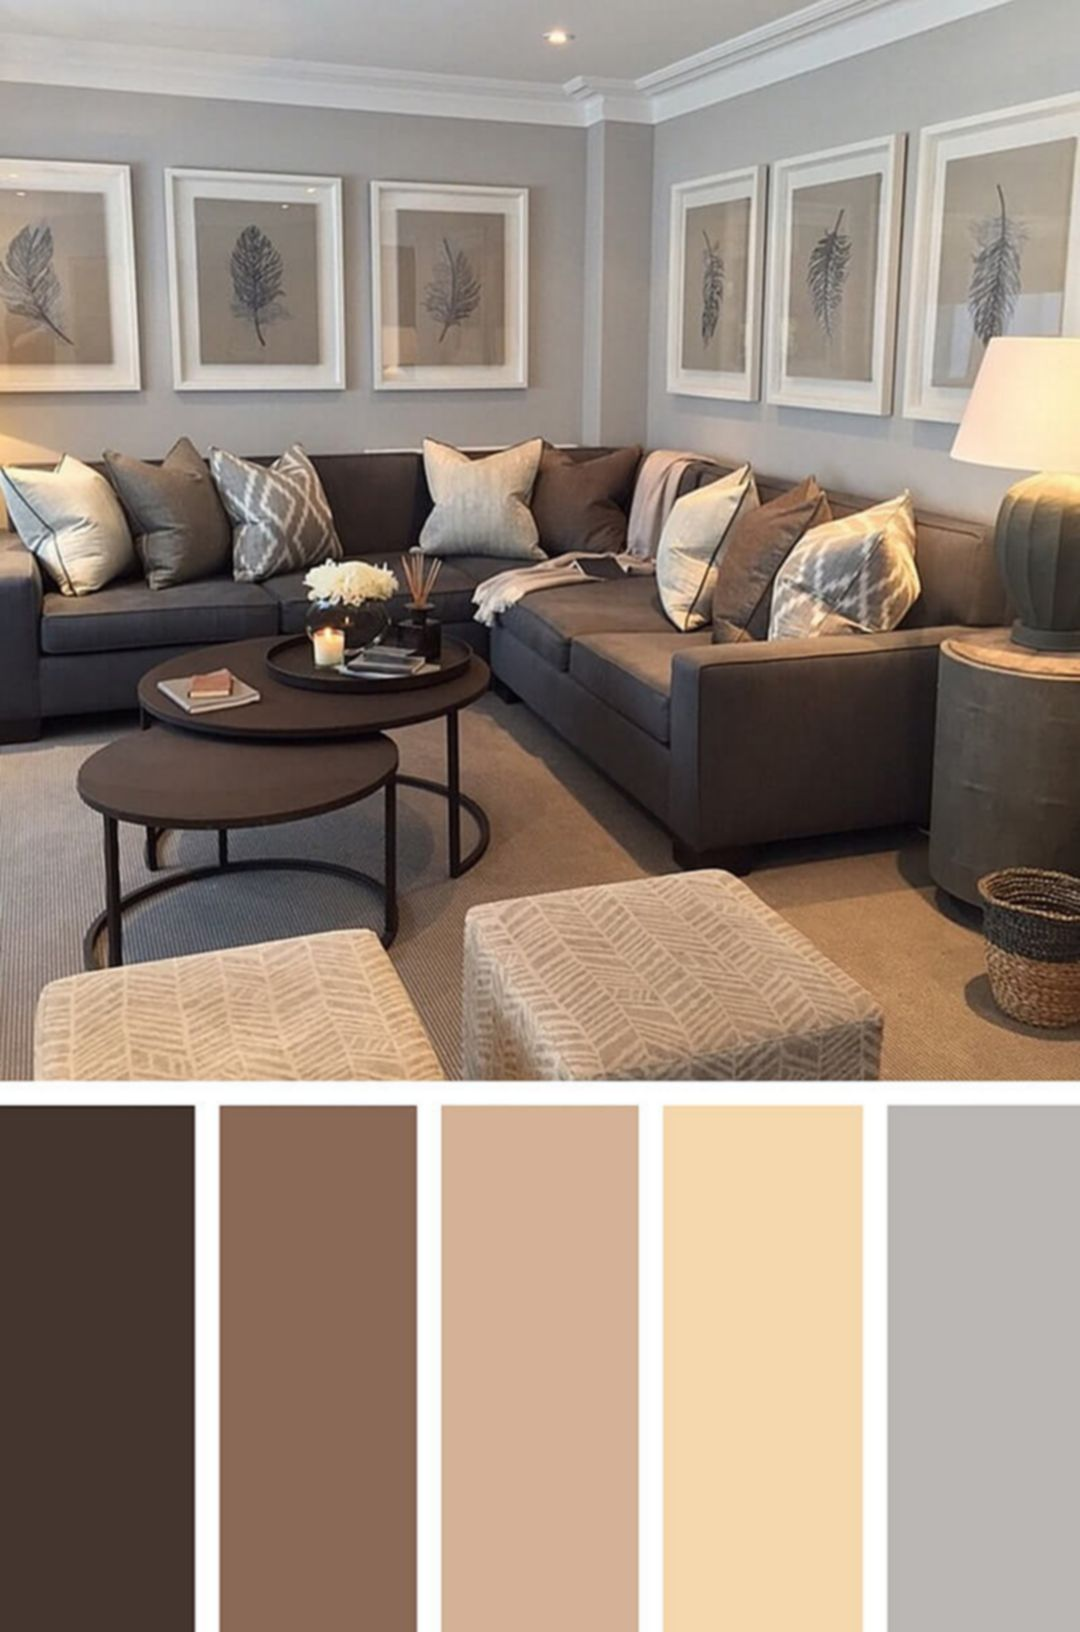 Best Color For Living Room 2018 Internal Home Design In 2020 Living Room Color Schemes Living Room Color Paint Colors For Living Room